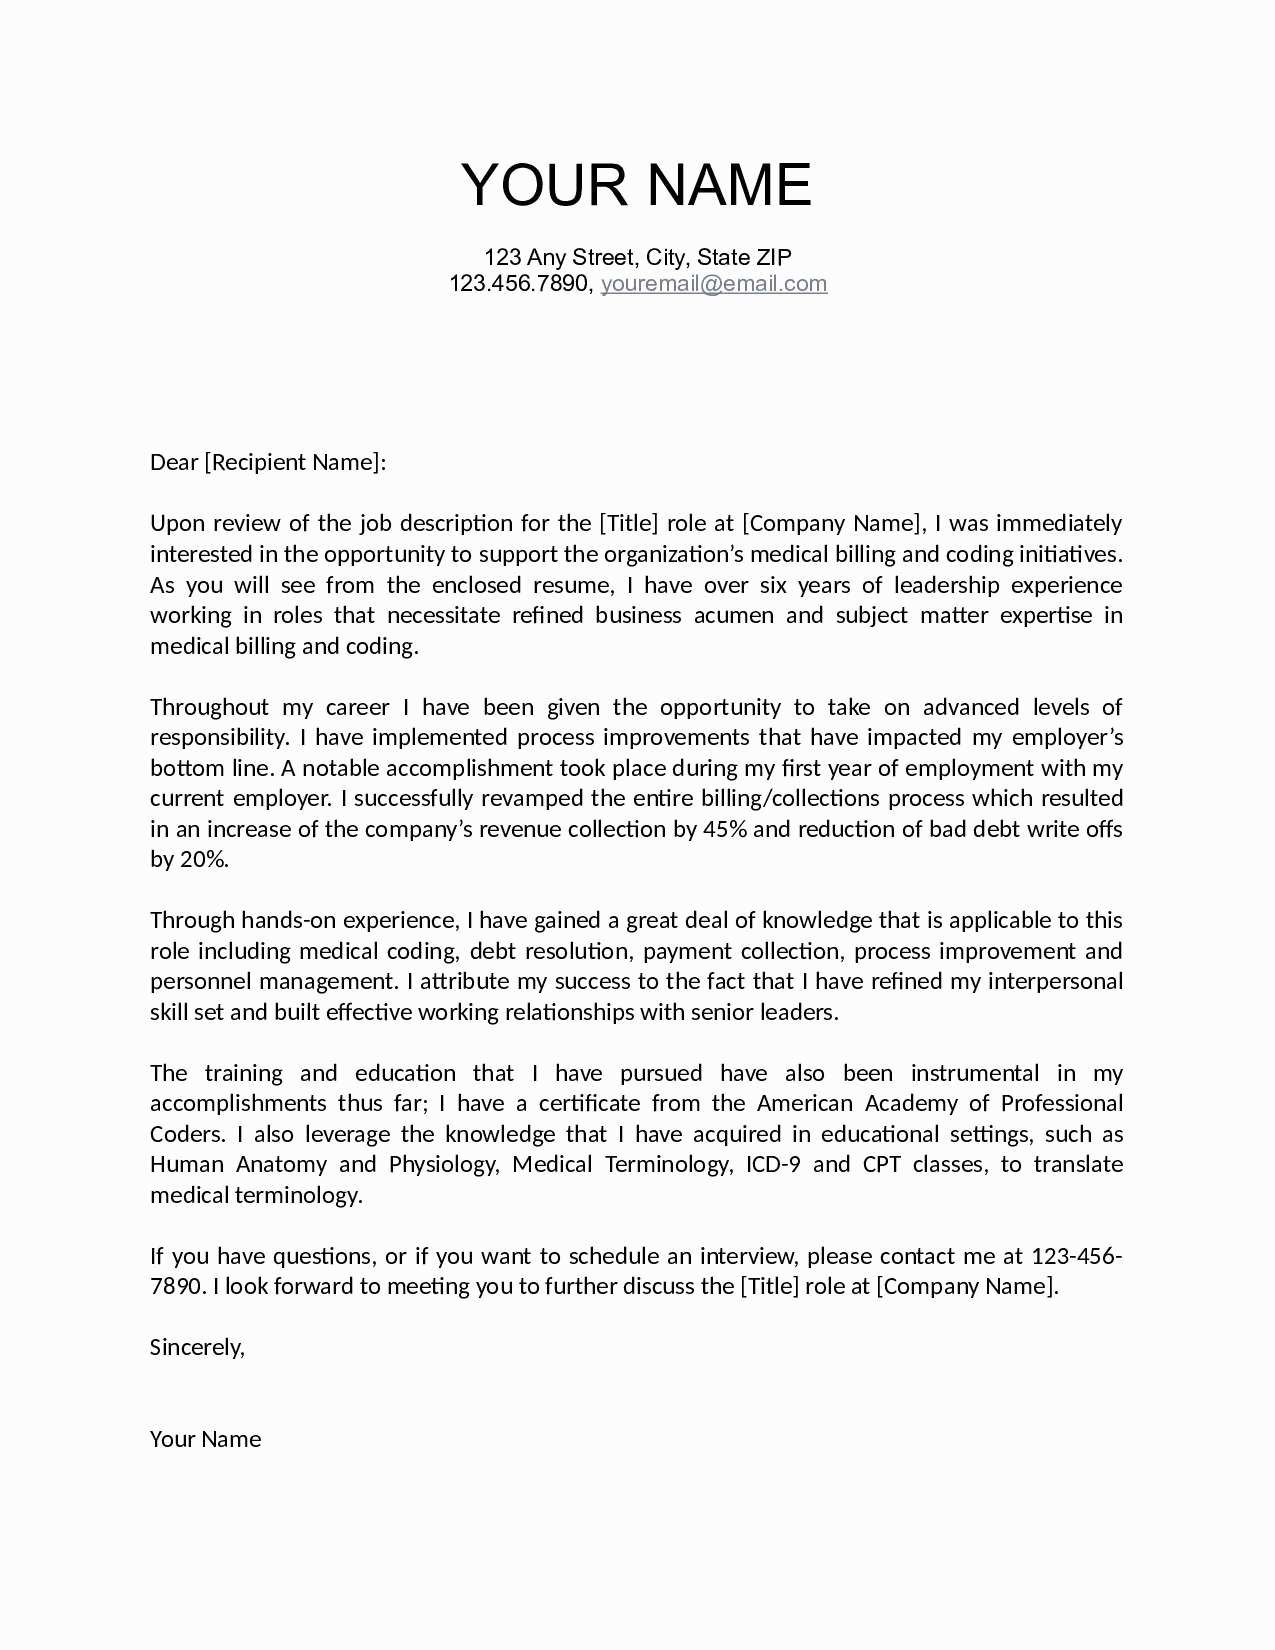 Basic Cover Letter Template - Covering Letter for Work Experience Best Job Fer Letter Template